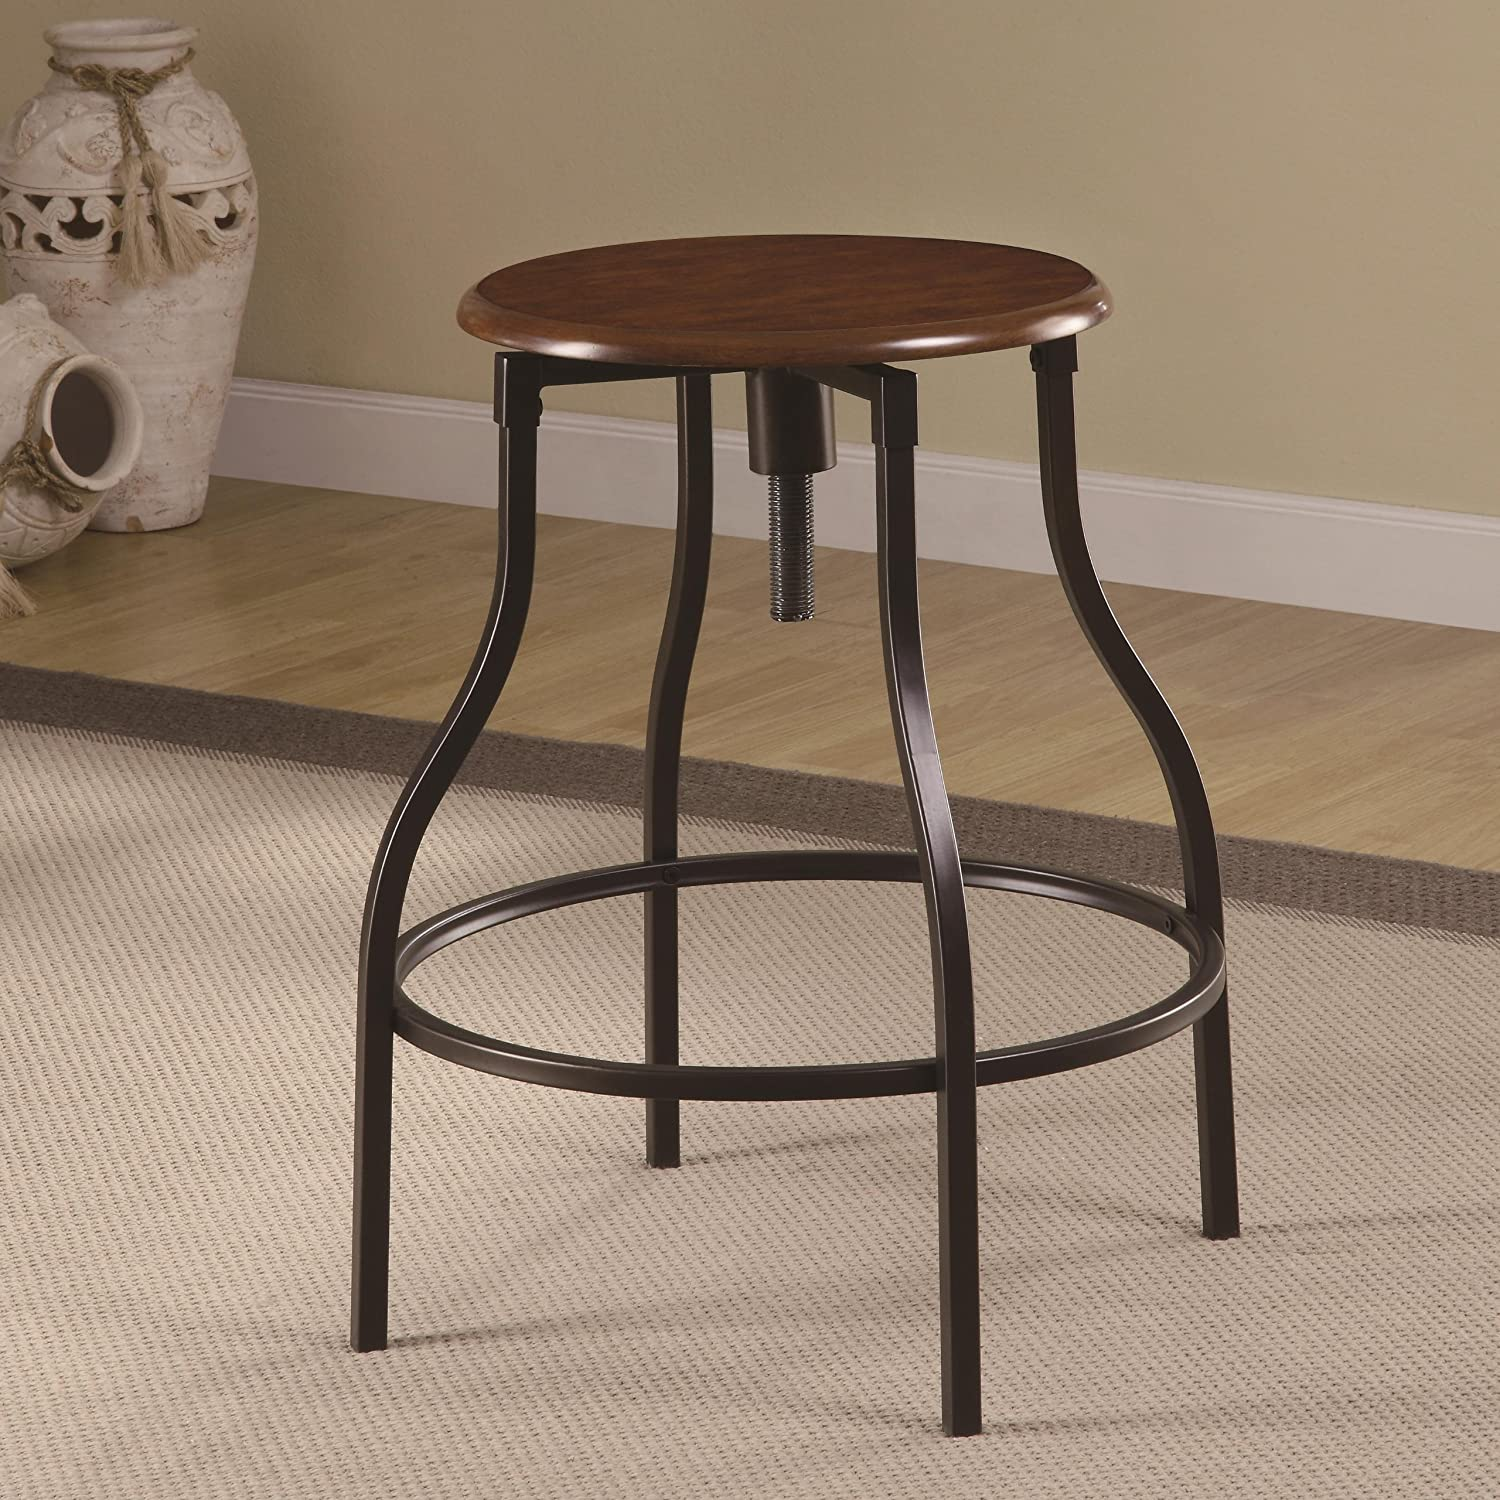 & Amazon.com: Coaster Adjustable Bar Stool-Black: Kitchen u0026 Dining islam-shia.org